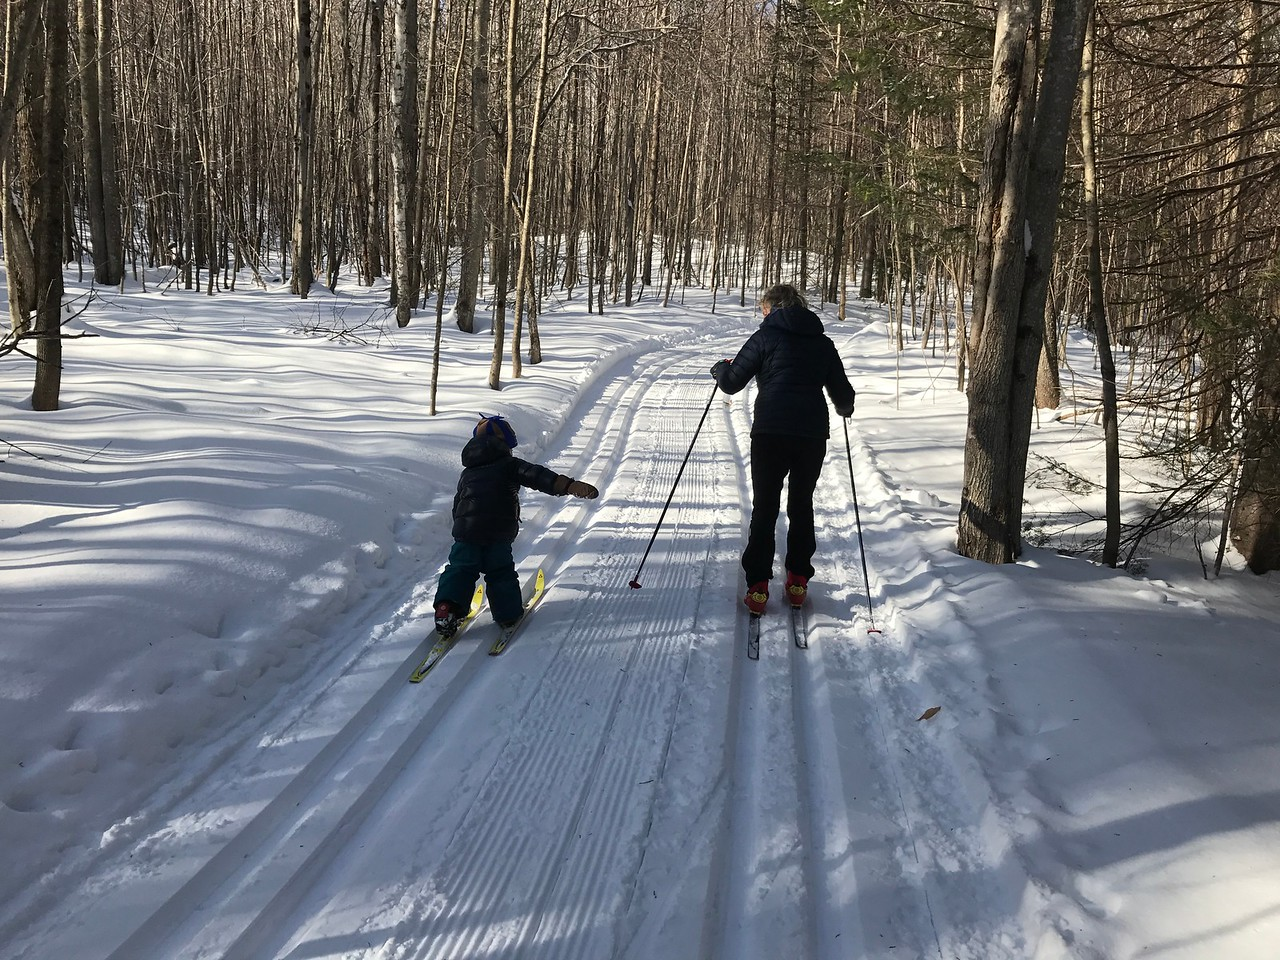 G and I ski down the Grouse